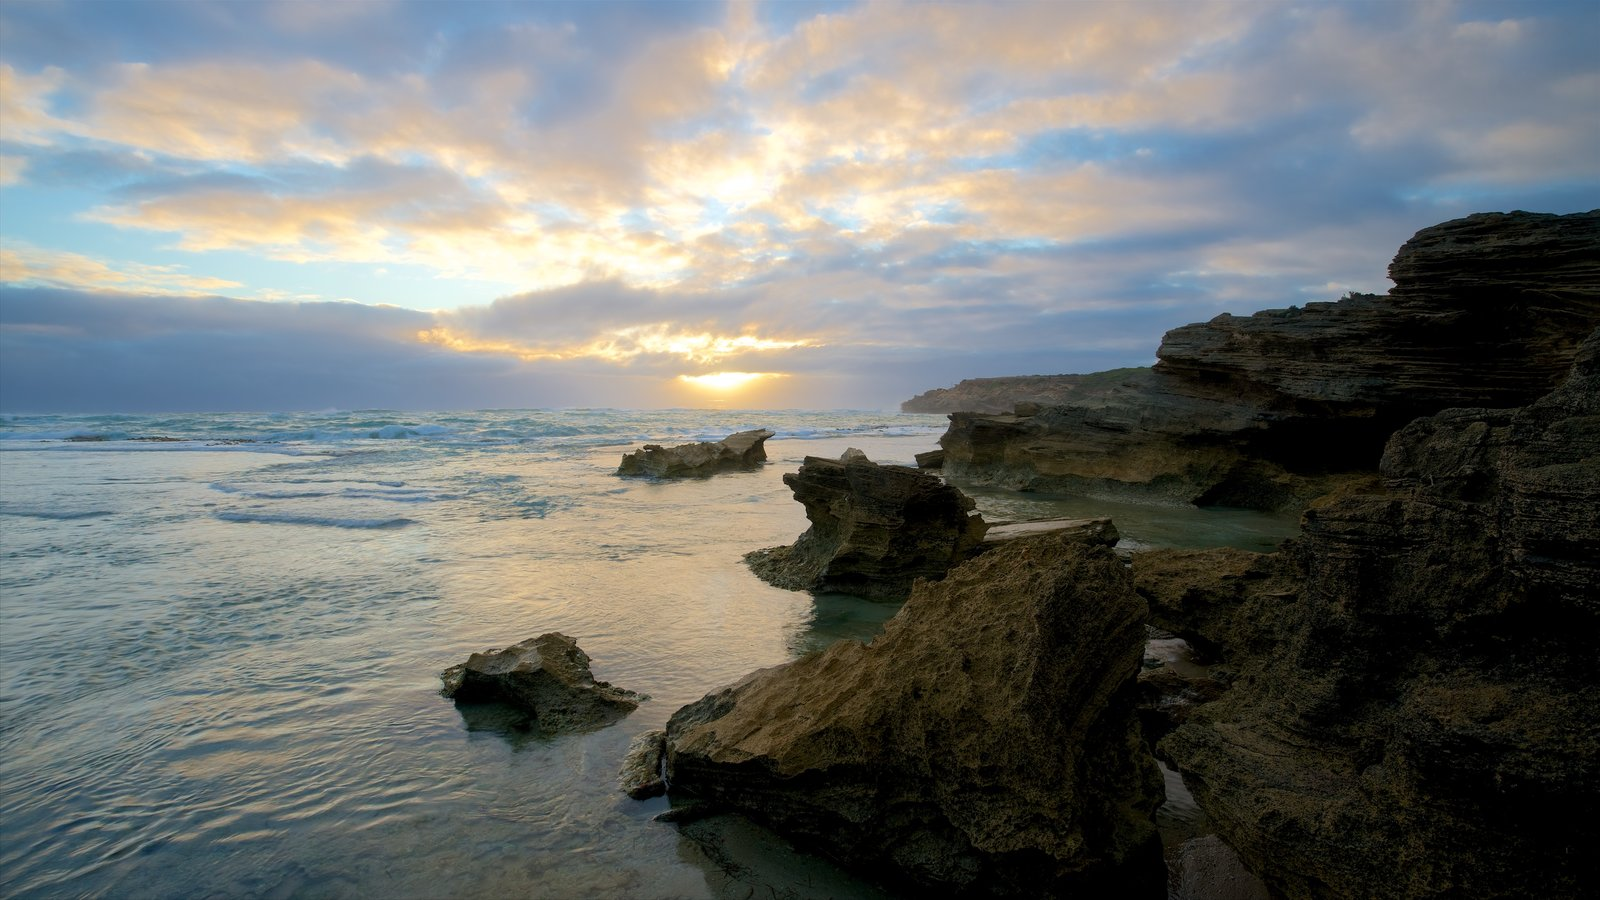 Warrnambool which includes a bay or harbor, a sunset and rugged coastline